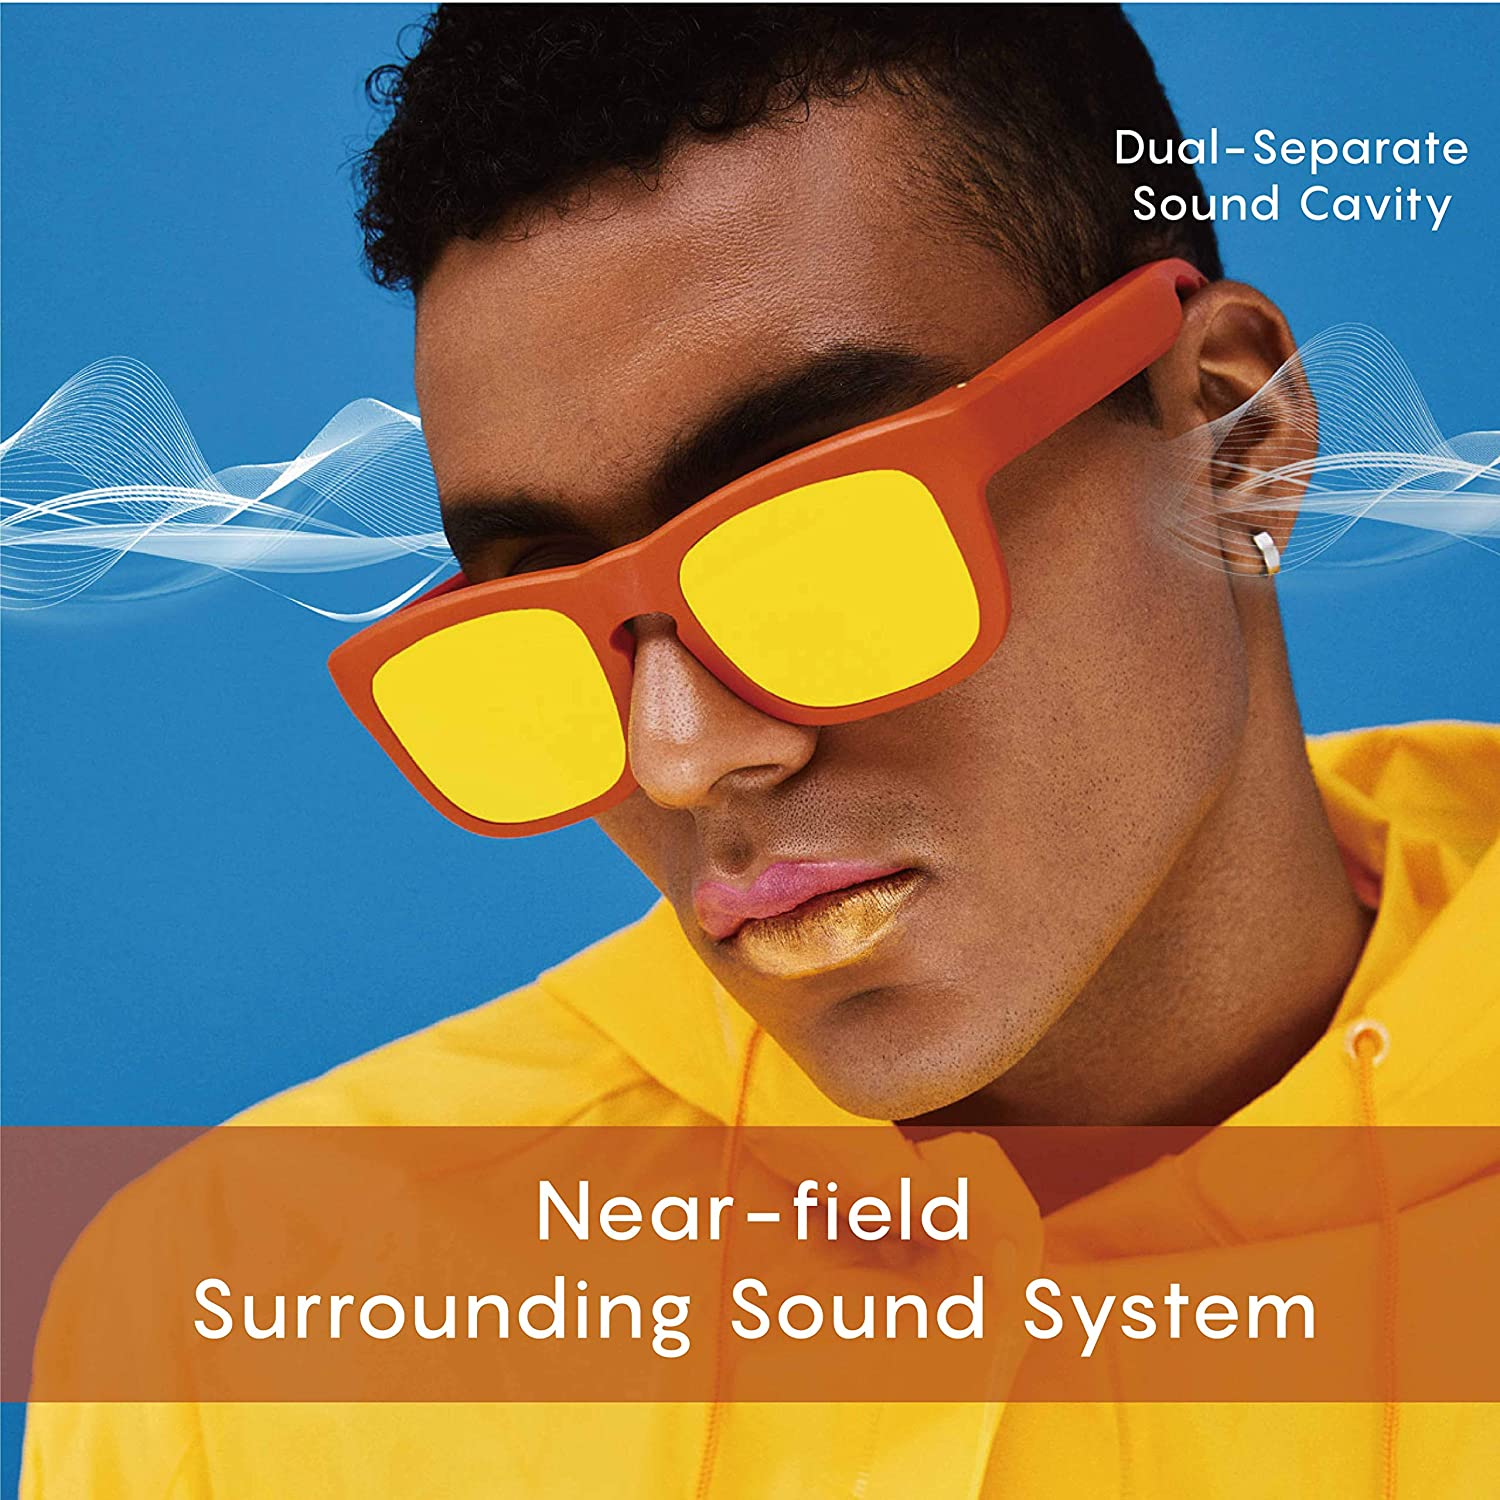 958017266f Audio Bluetooth Sunglasses for Men - Mutrics Stylish Smart Music Sunglasses  with Virtual 5.1 Surround Sound, Hands Free Call, AI Voice Control, UV 400  ...